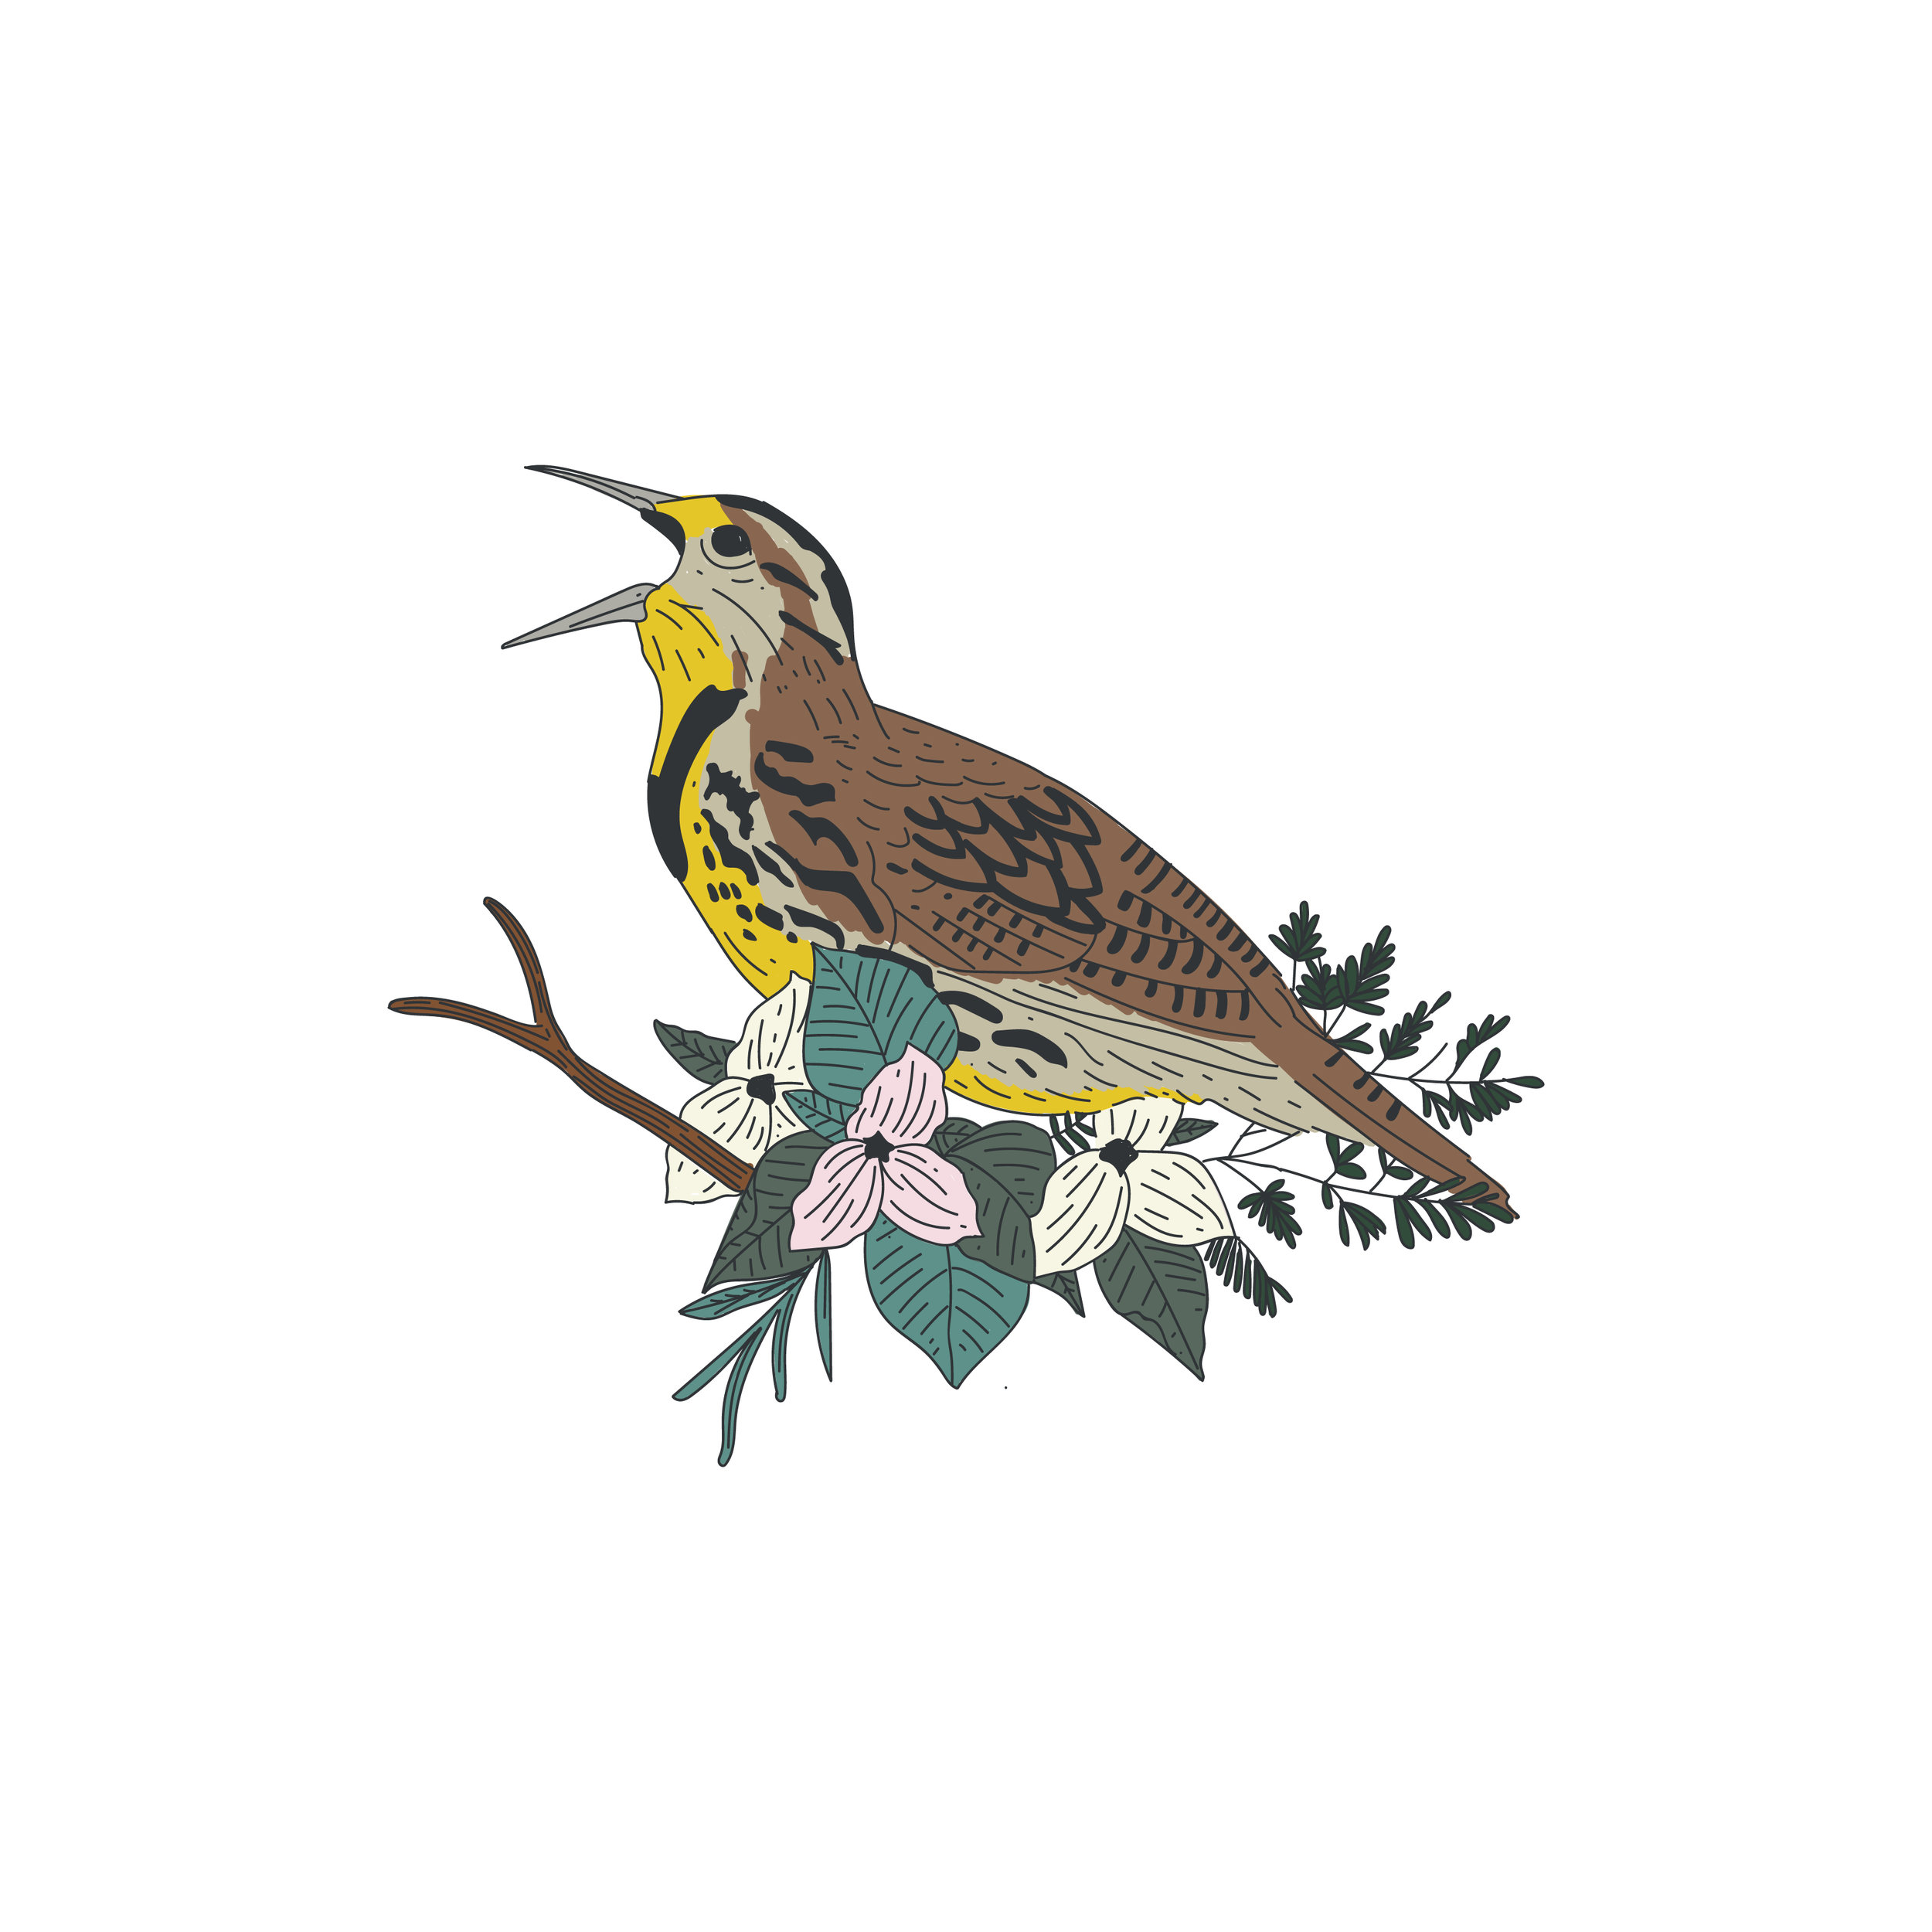 bird illustration-01.jpg